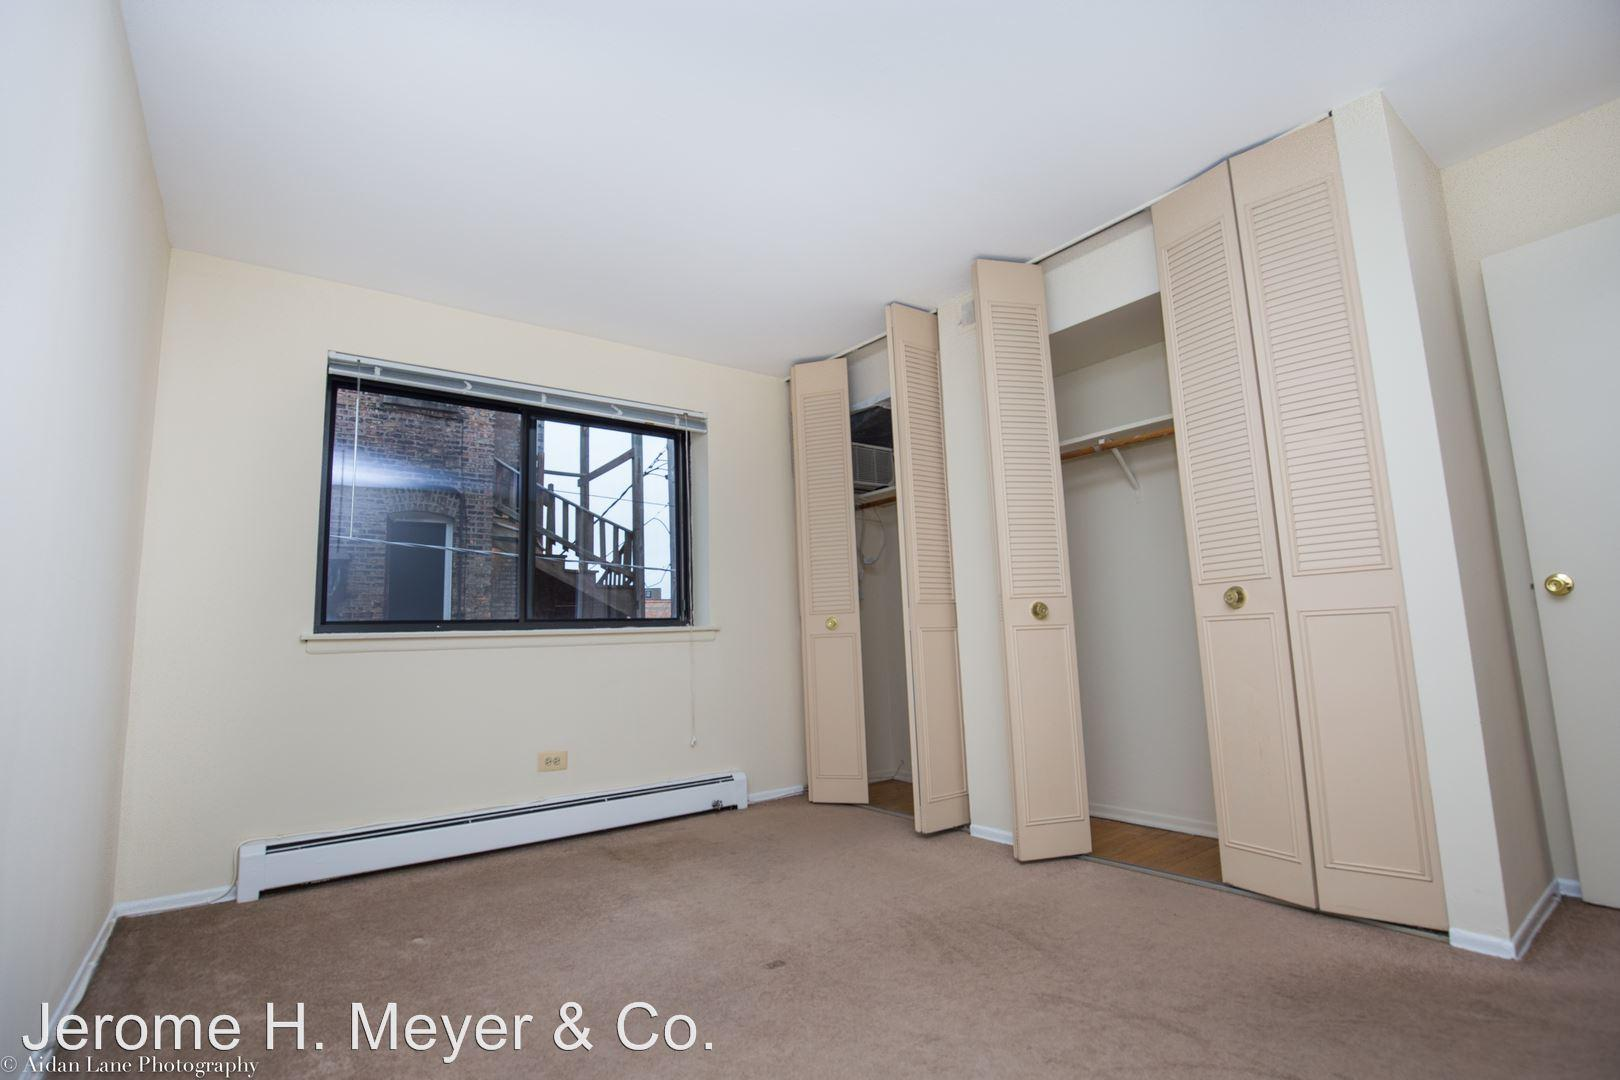 525 W. Deming Place Apartments photo #1